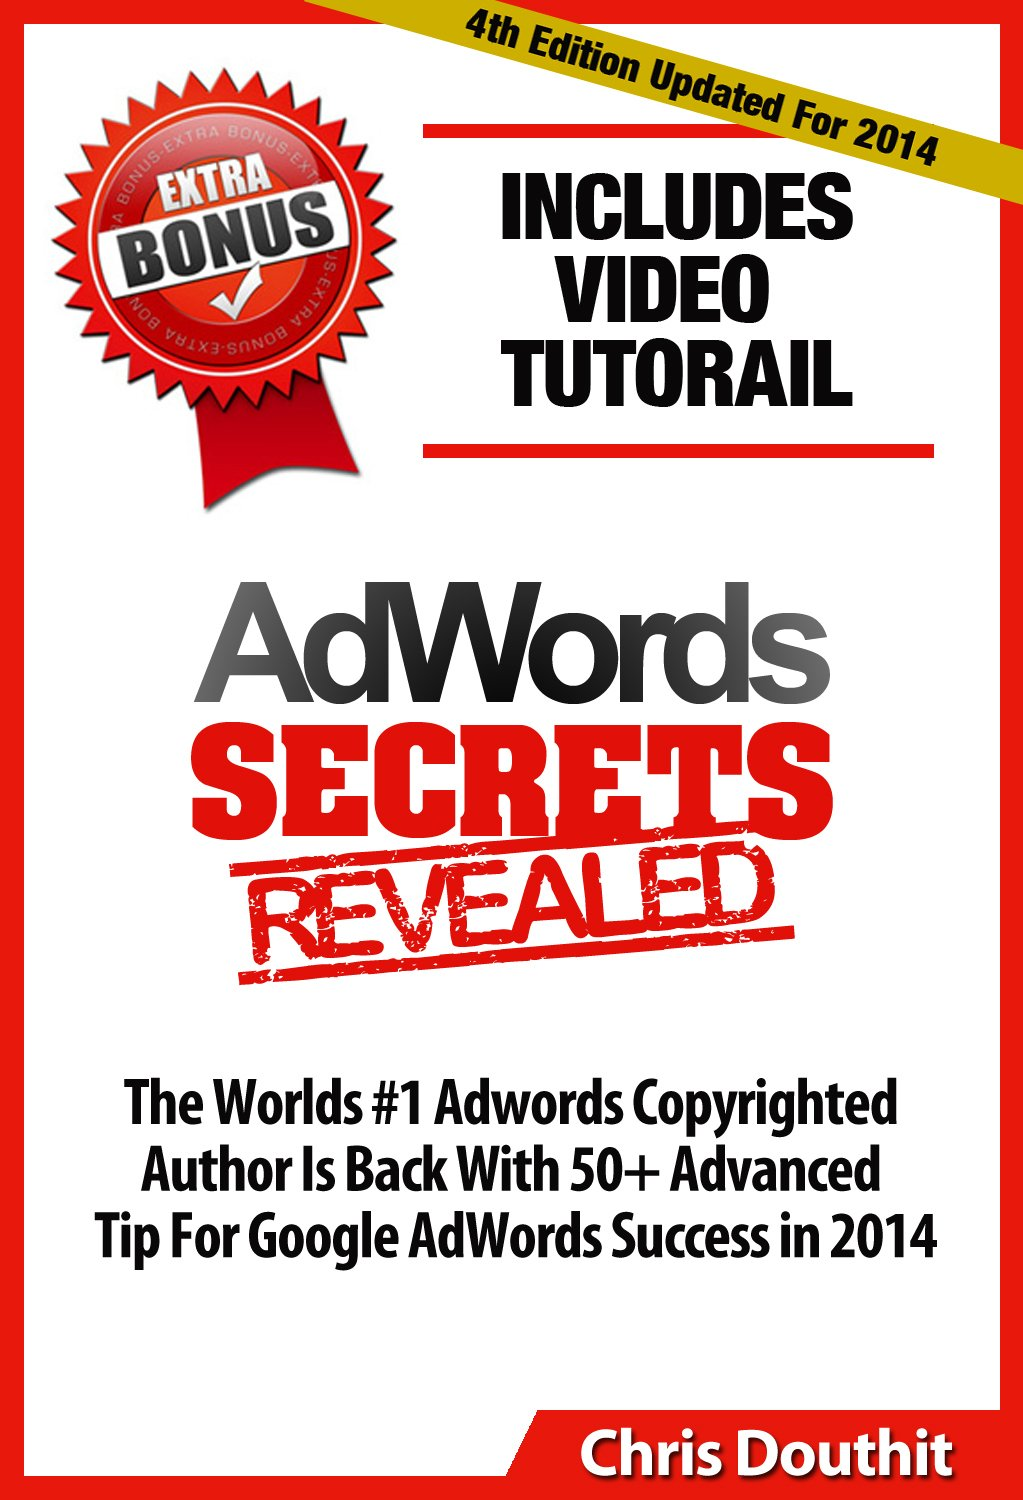 AdWords Secrets Revealed: The Complete Guide To Google AdWords Pay Per Click and PPC Marketing